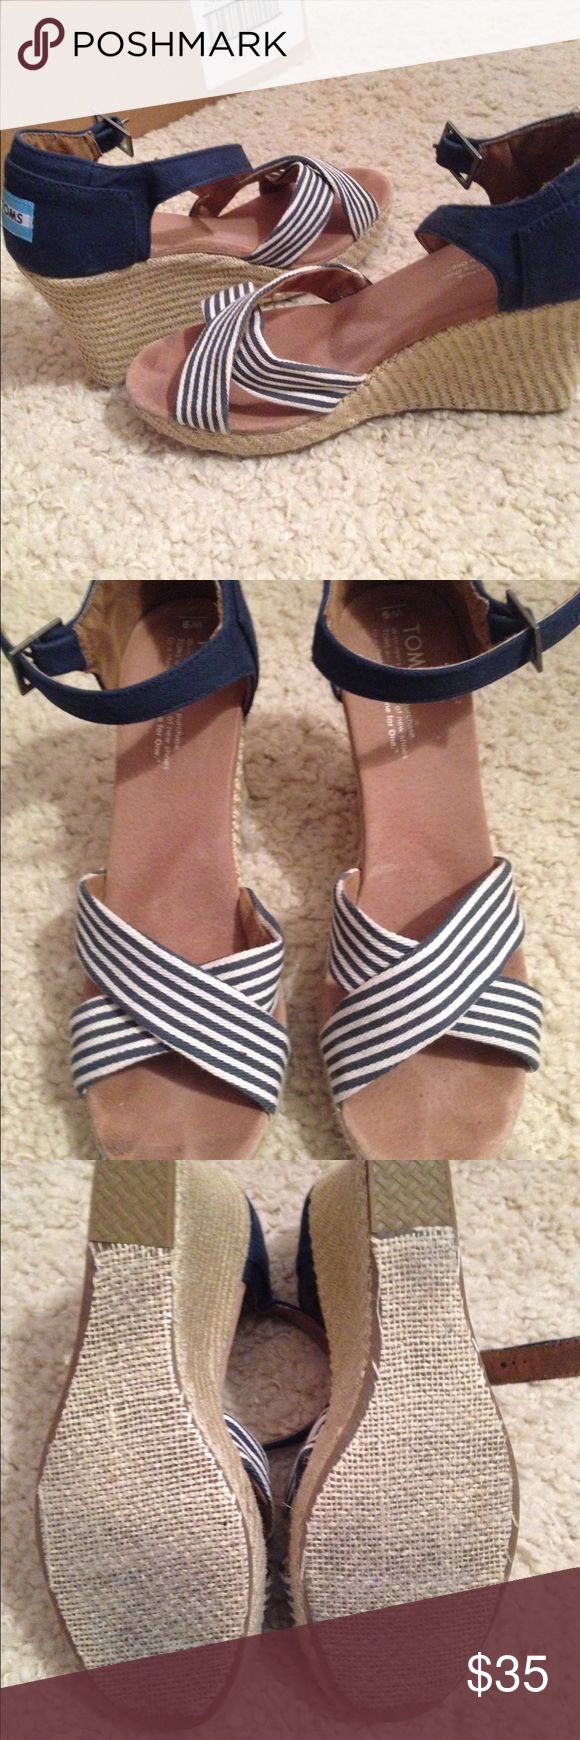 TOMS blue stripe wedge heel size 9 Lightly worn TOMS blue striped wedge heel. Actually very comfortable for the height. Great spring and summer heel! TOMS Shoes Heels